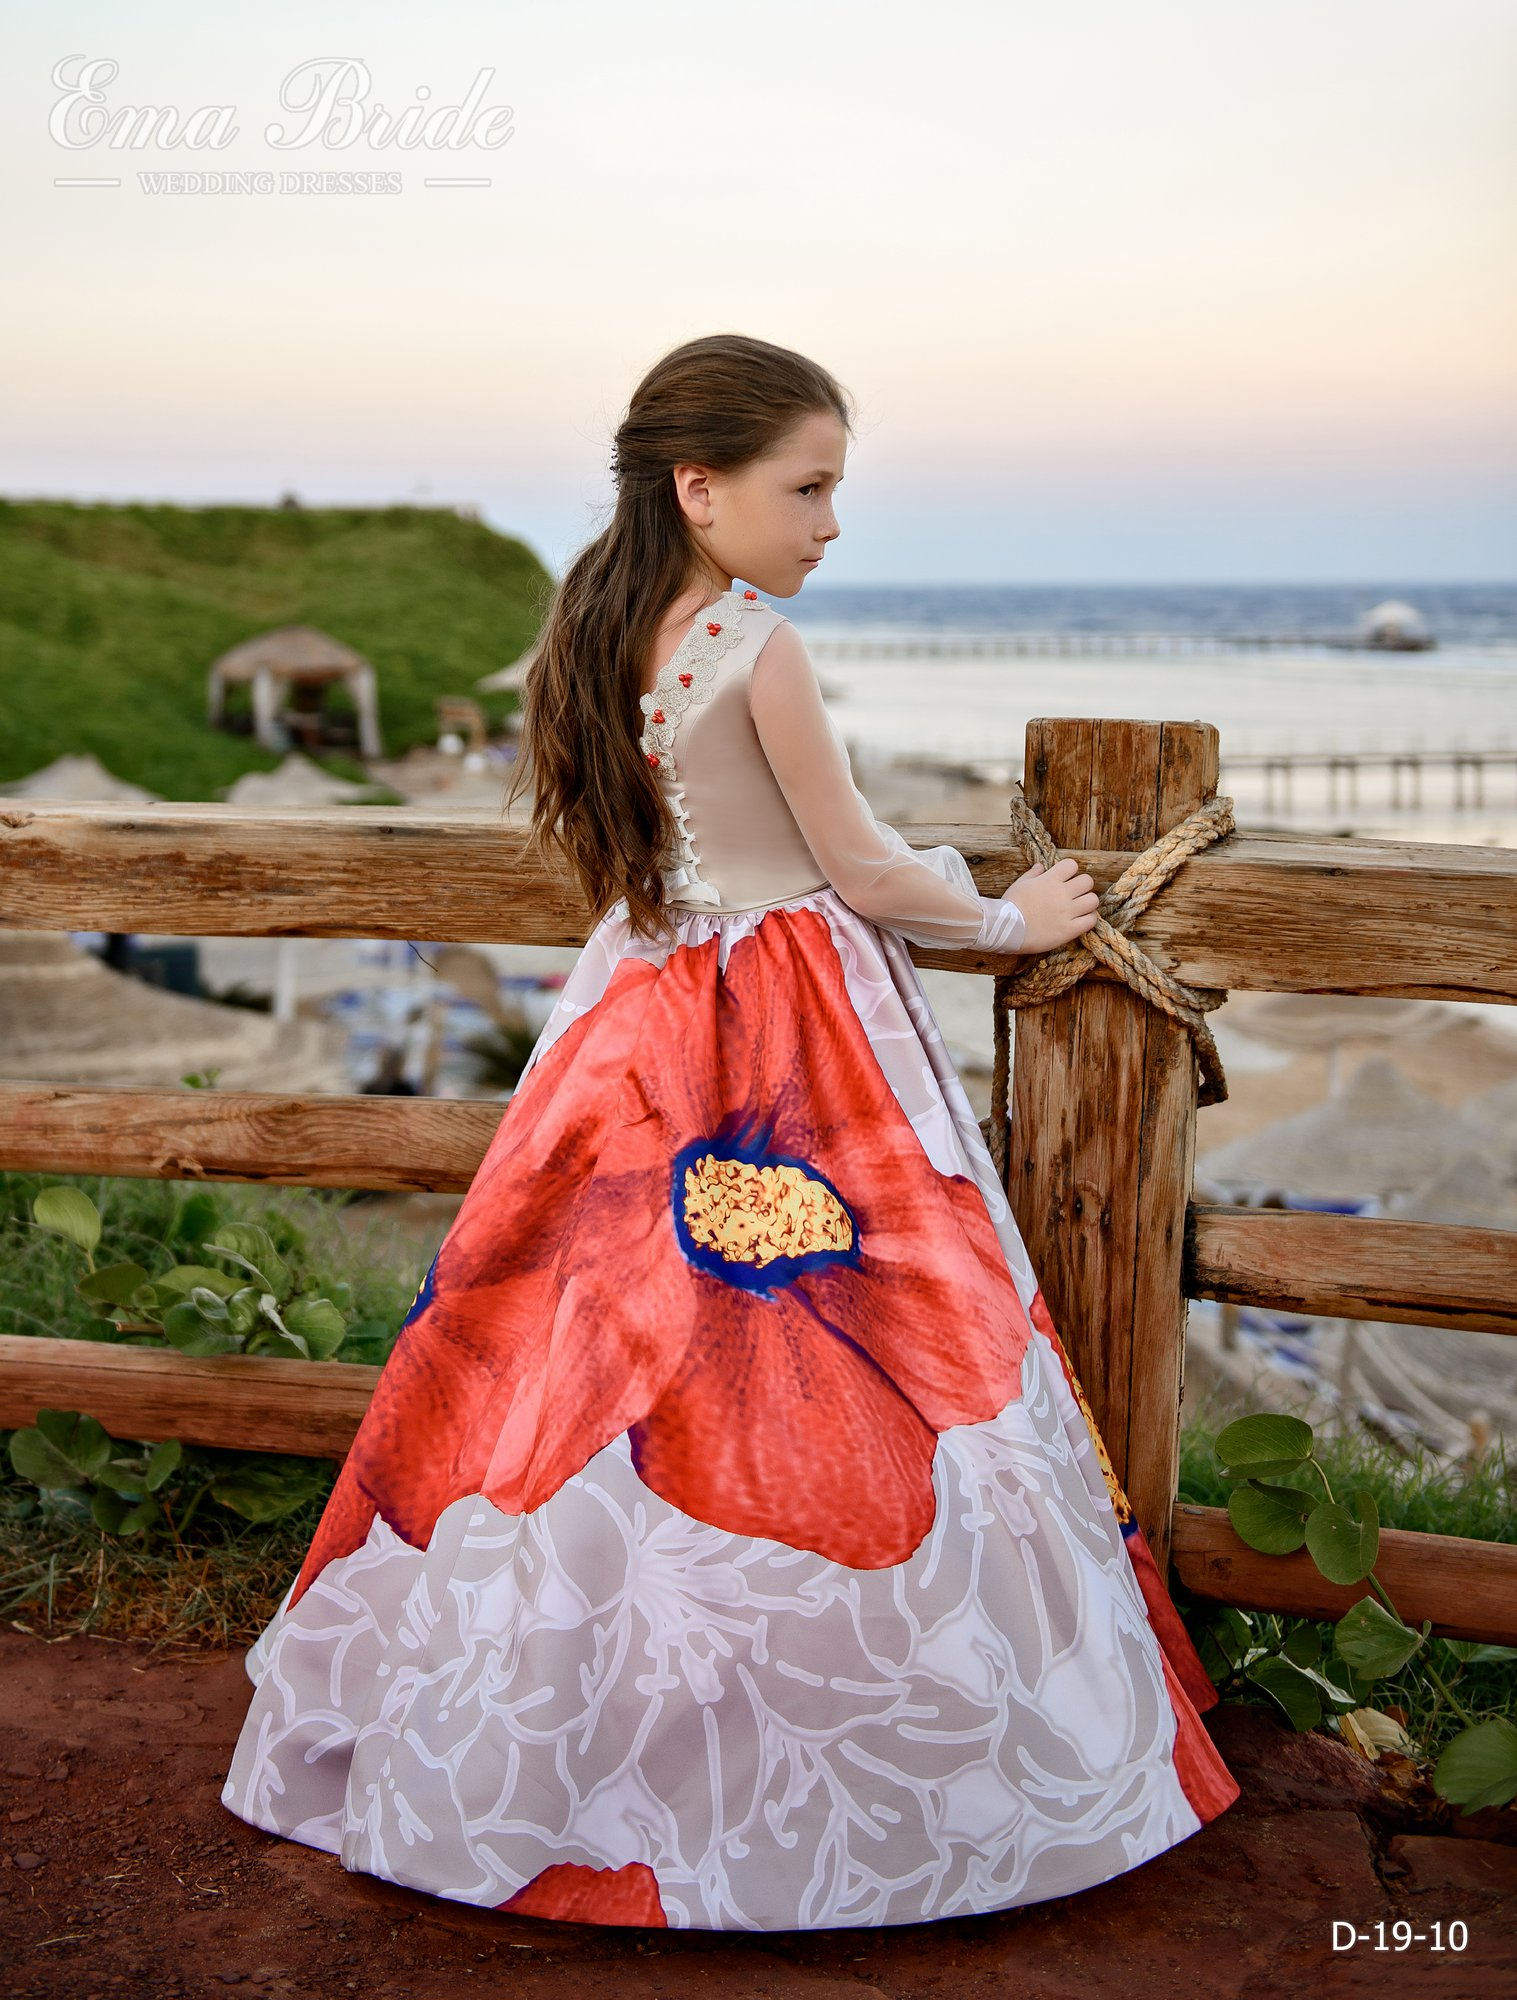 Children's dress by EmaBride D-19-10 2019-3